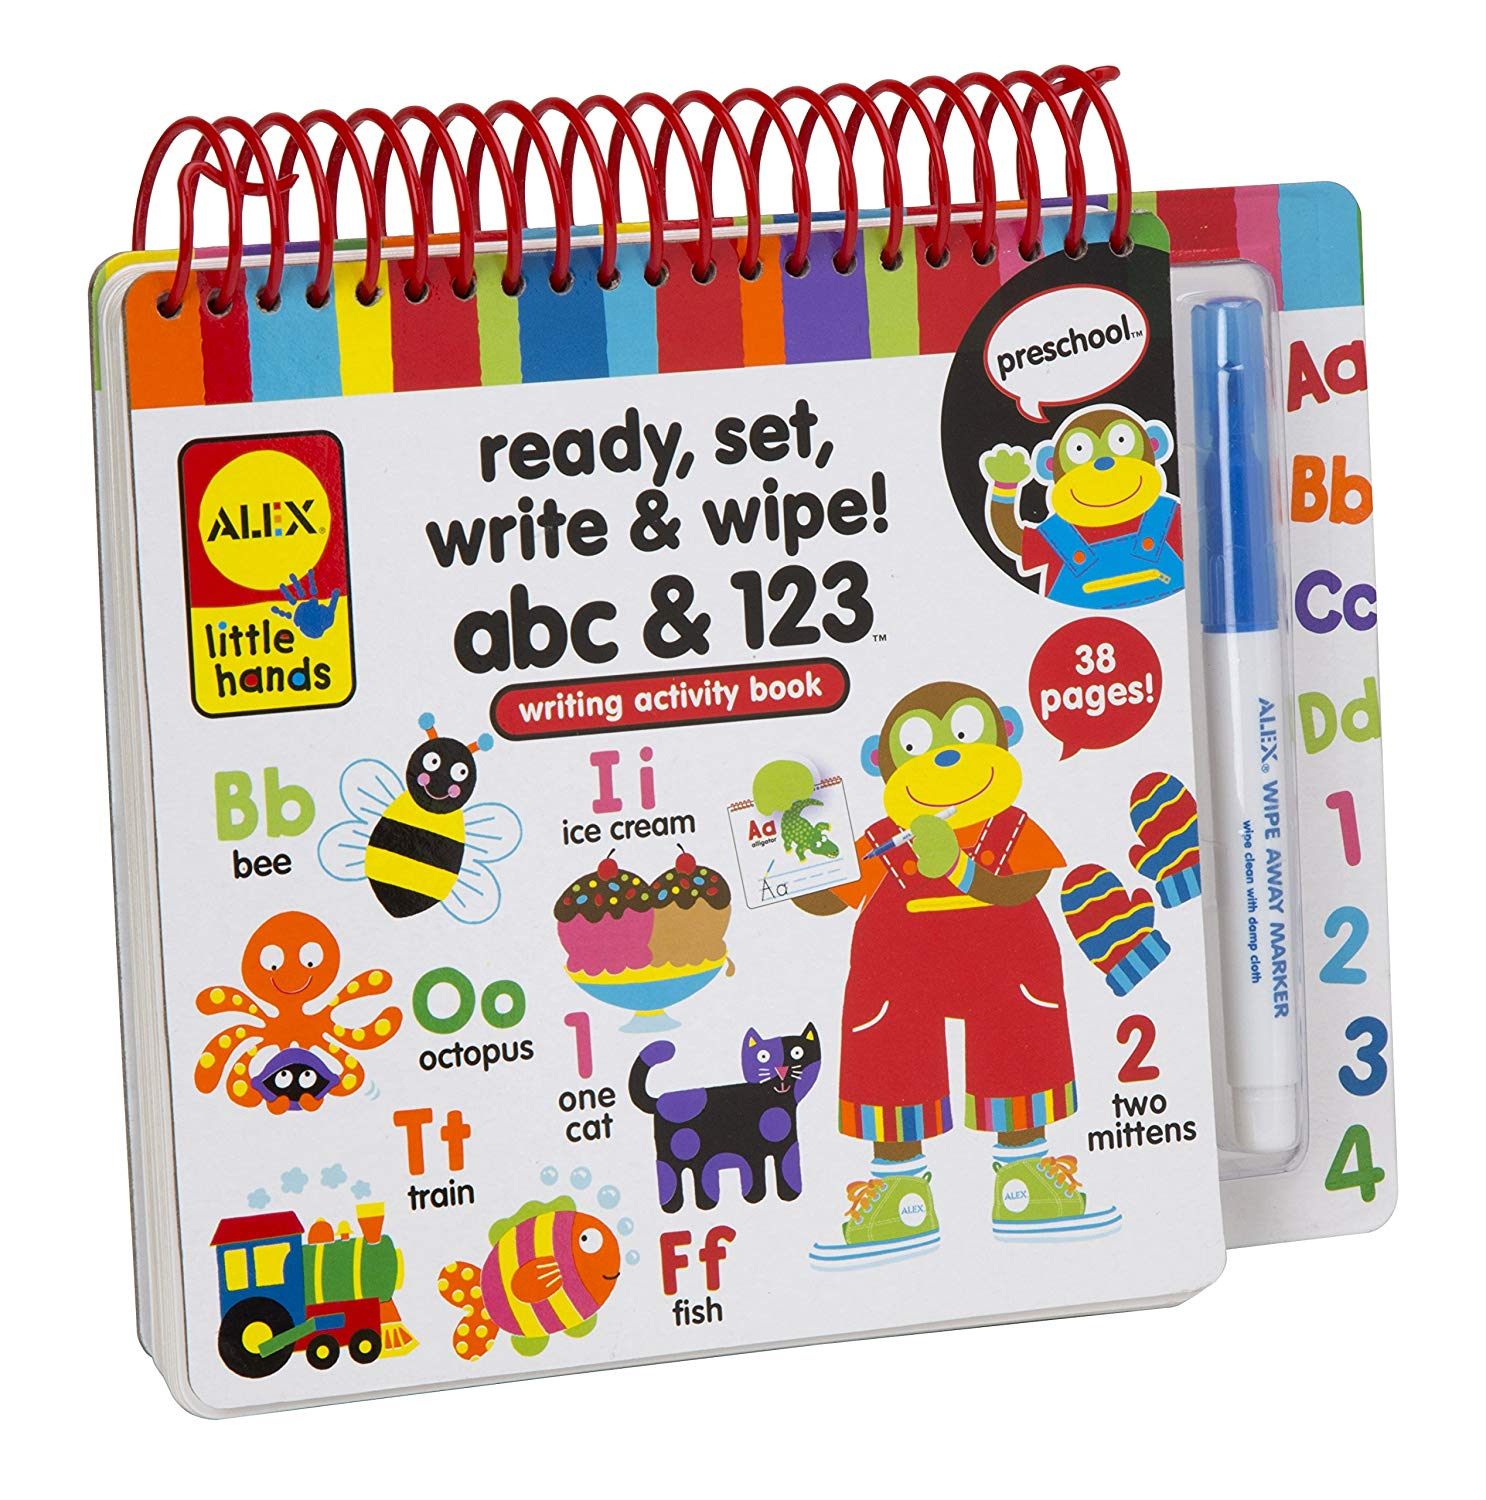 Alex Toys Early Learning Ready Set Write Little Hands